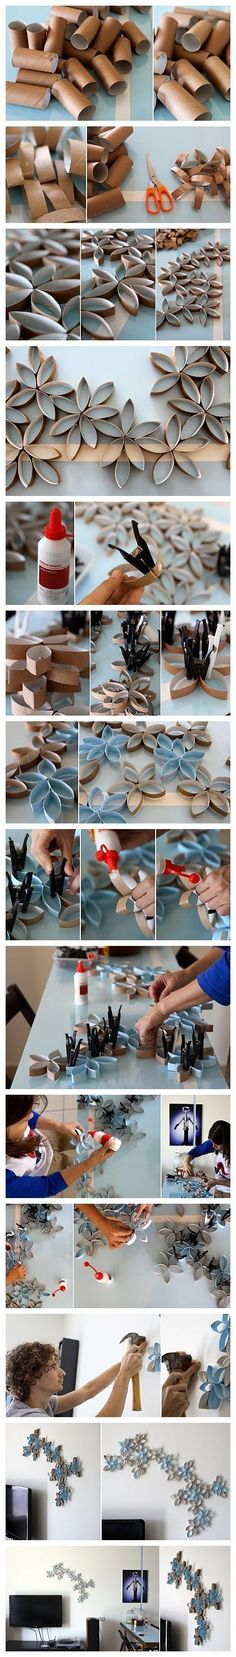 How to DIY toilet paper roll wall art project | DIY Tag Toilet Paper Rolls, Toilet Paper Art, Toilet Roll Crafts, Toilet Paper Flowers, Toilet Roll Art, Paper Towel Roll Crafts, Toilet Tube, Toilet Wall, Paper Wall Decor